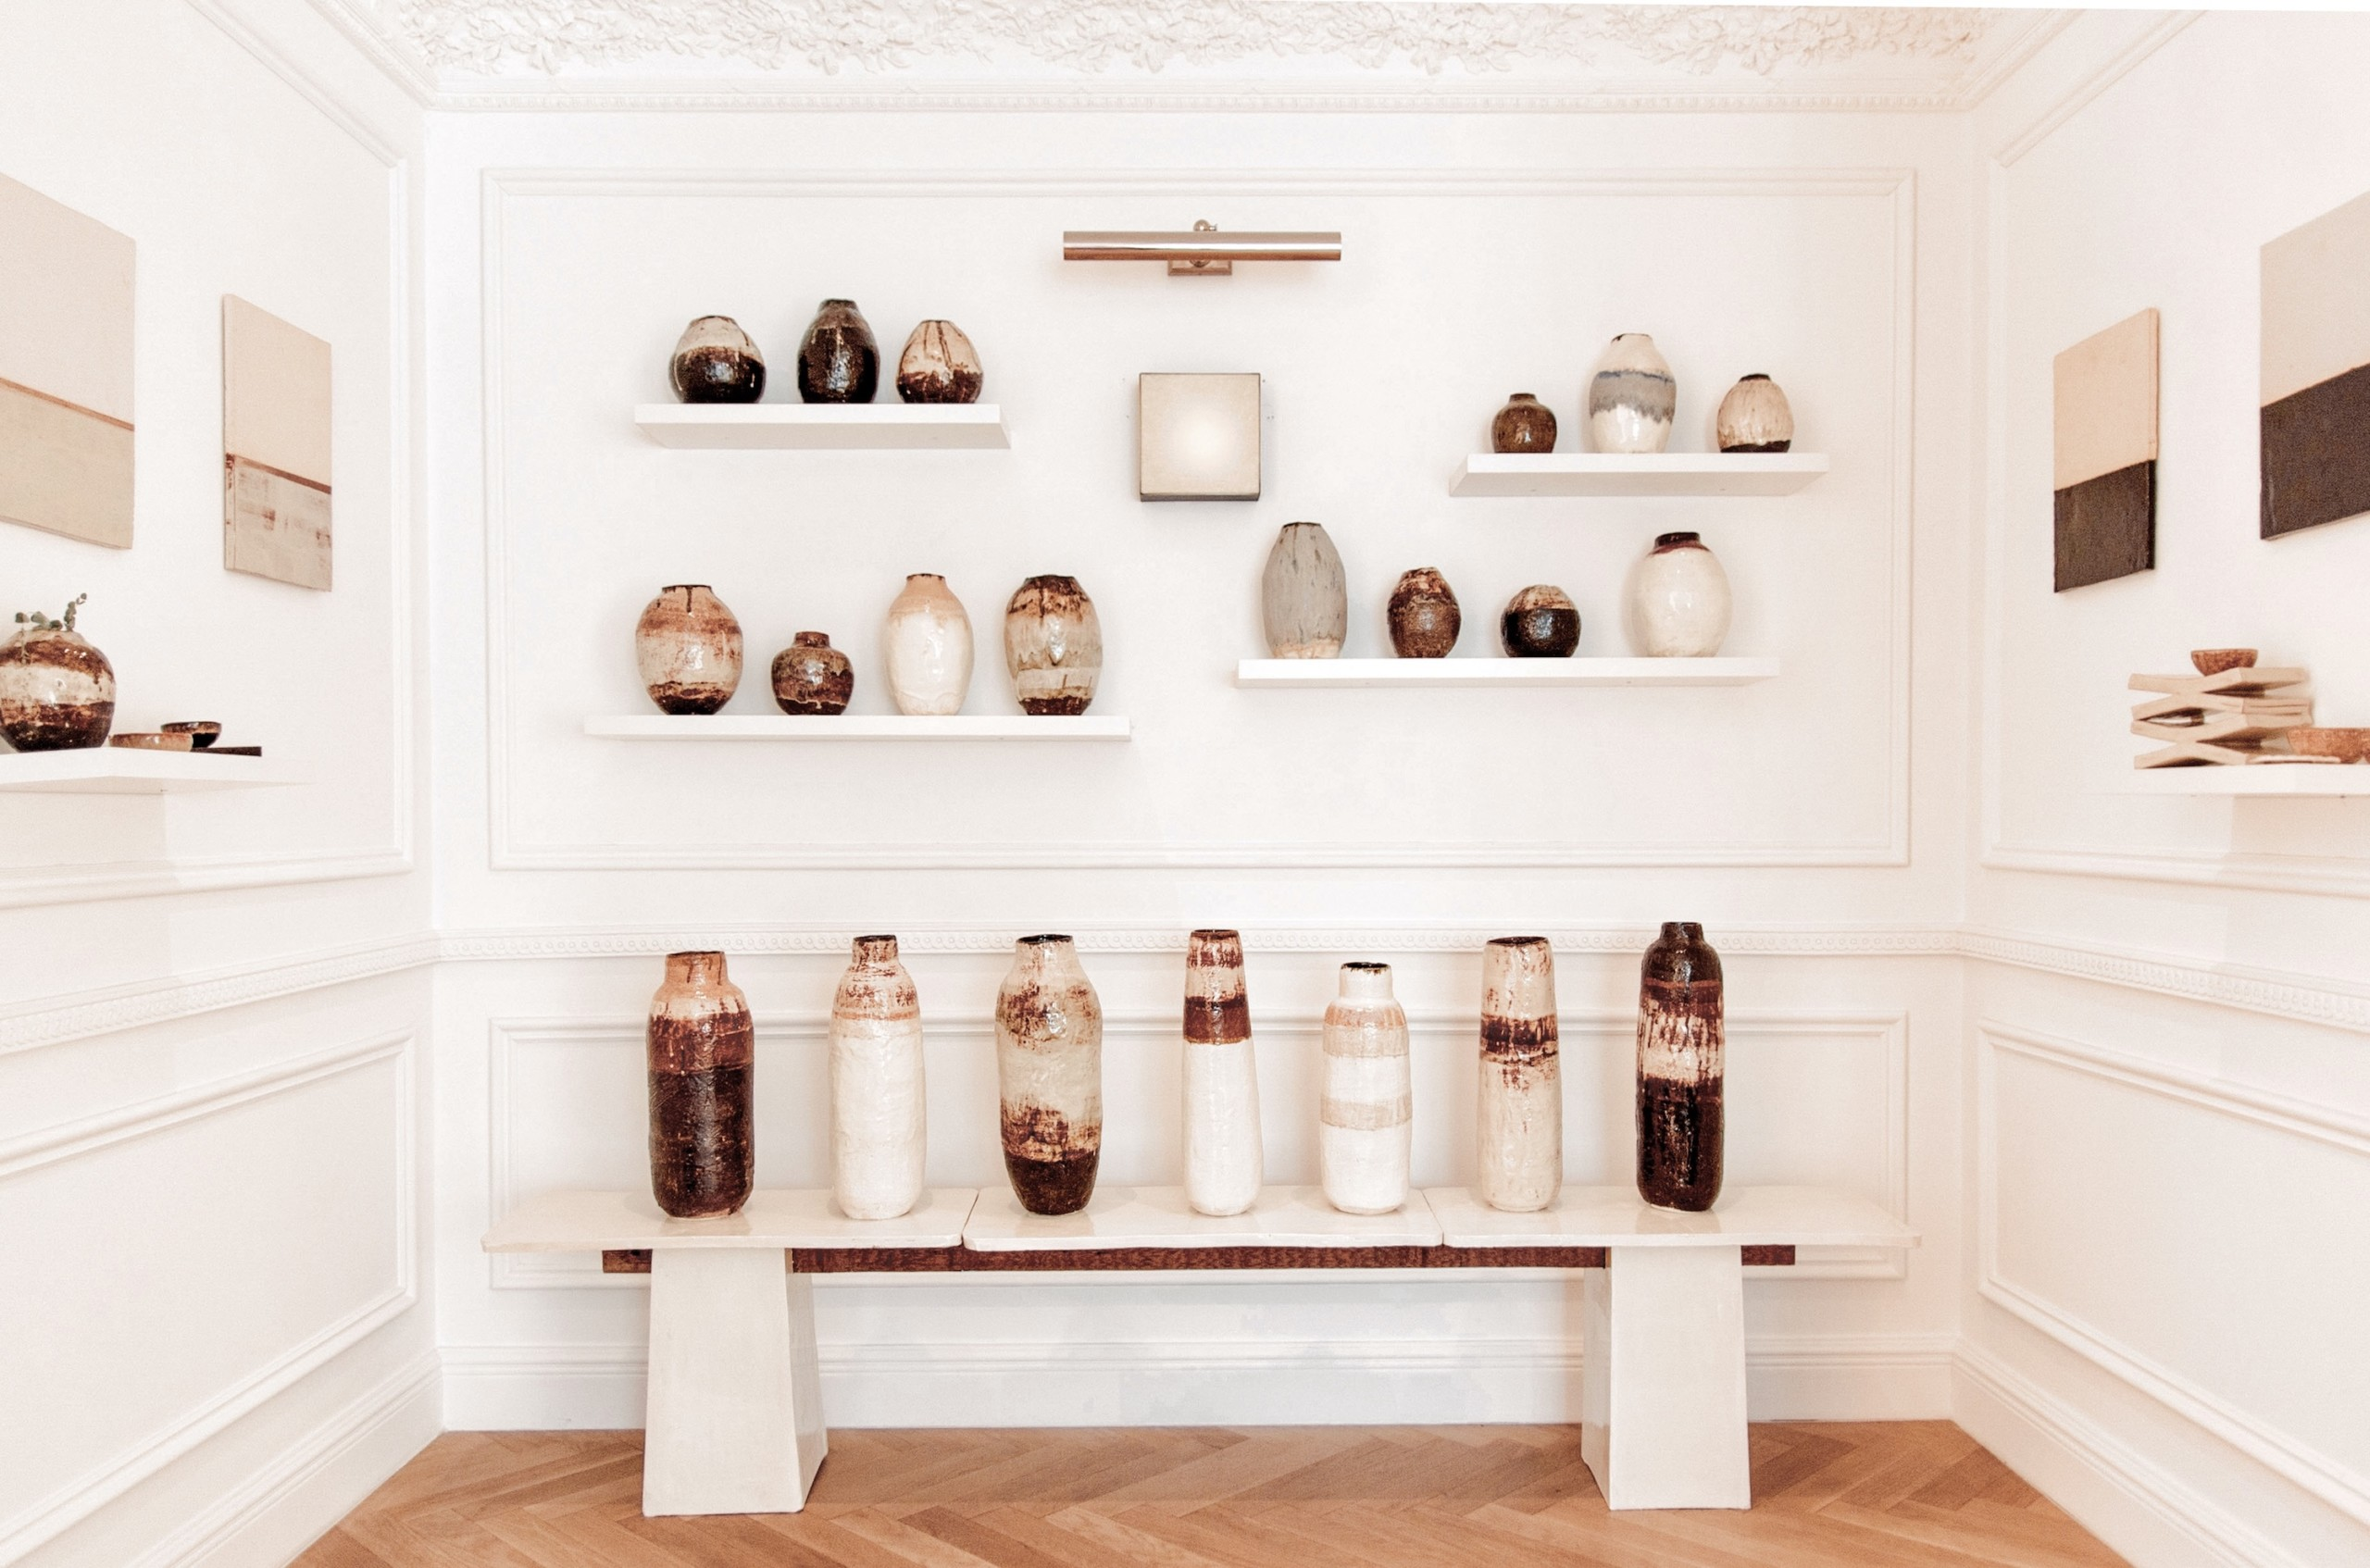 installation of earthy pottery, on benches and shelves in alcove